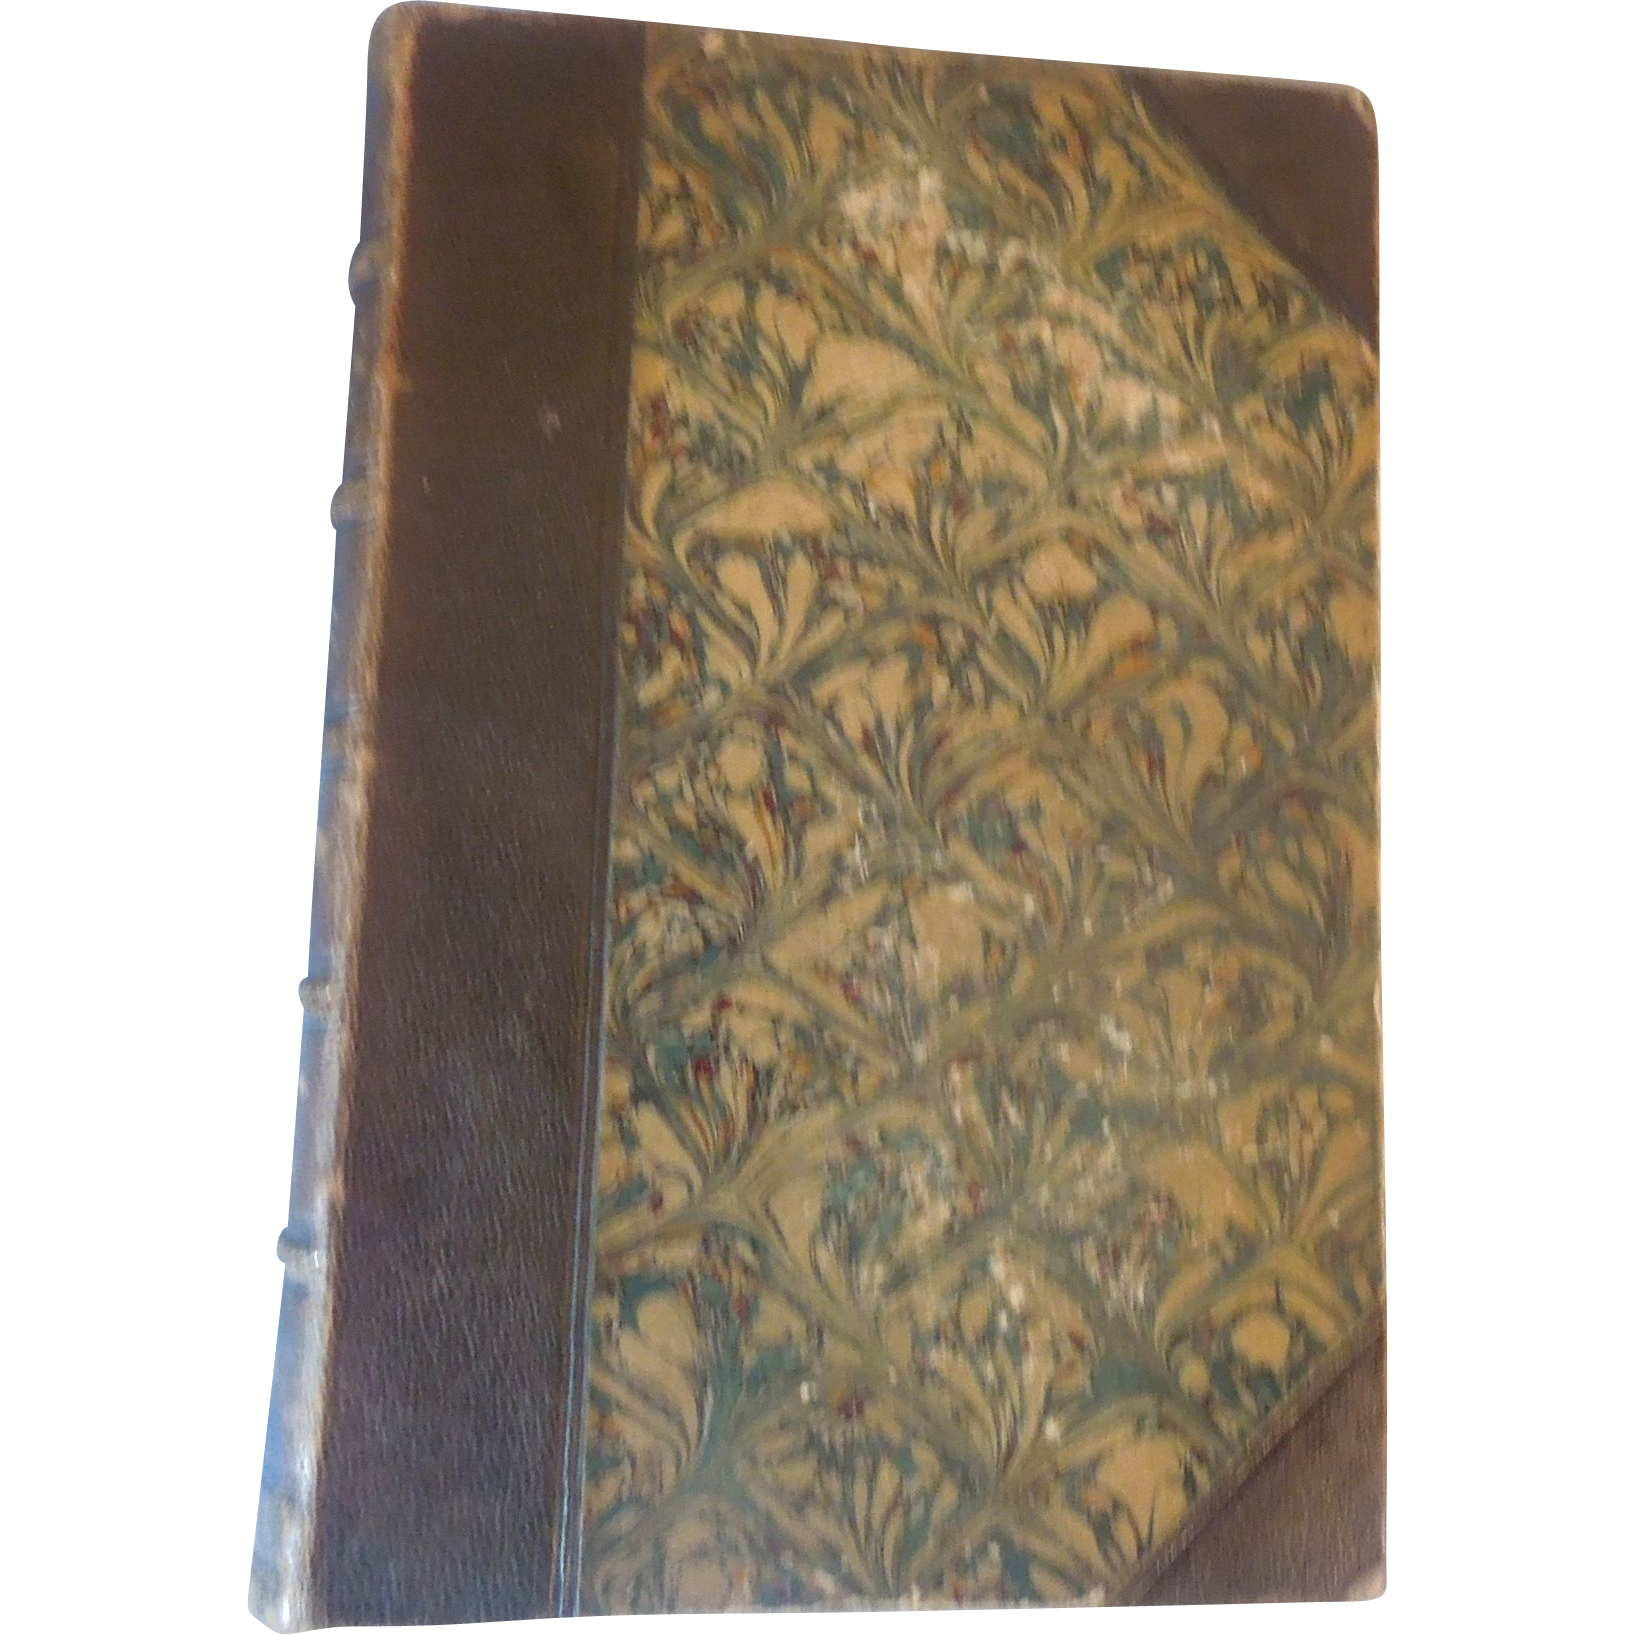 Pickwick Papers, Charles Dickens, Victorian